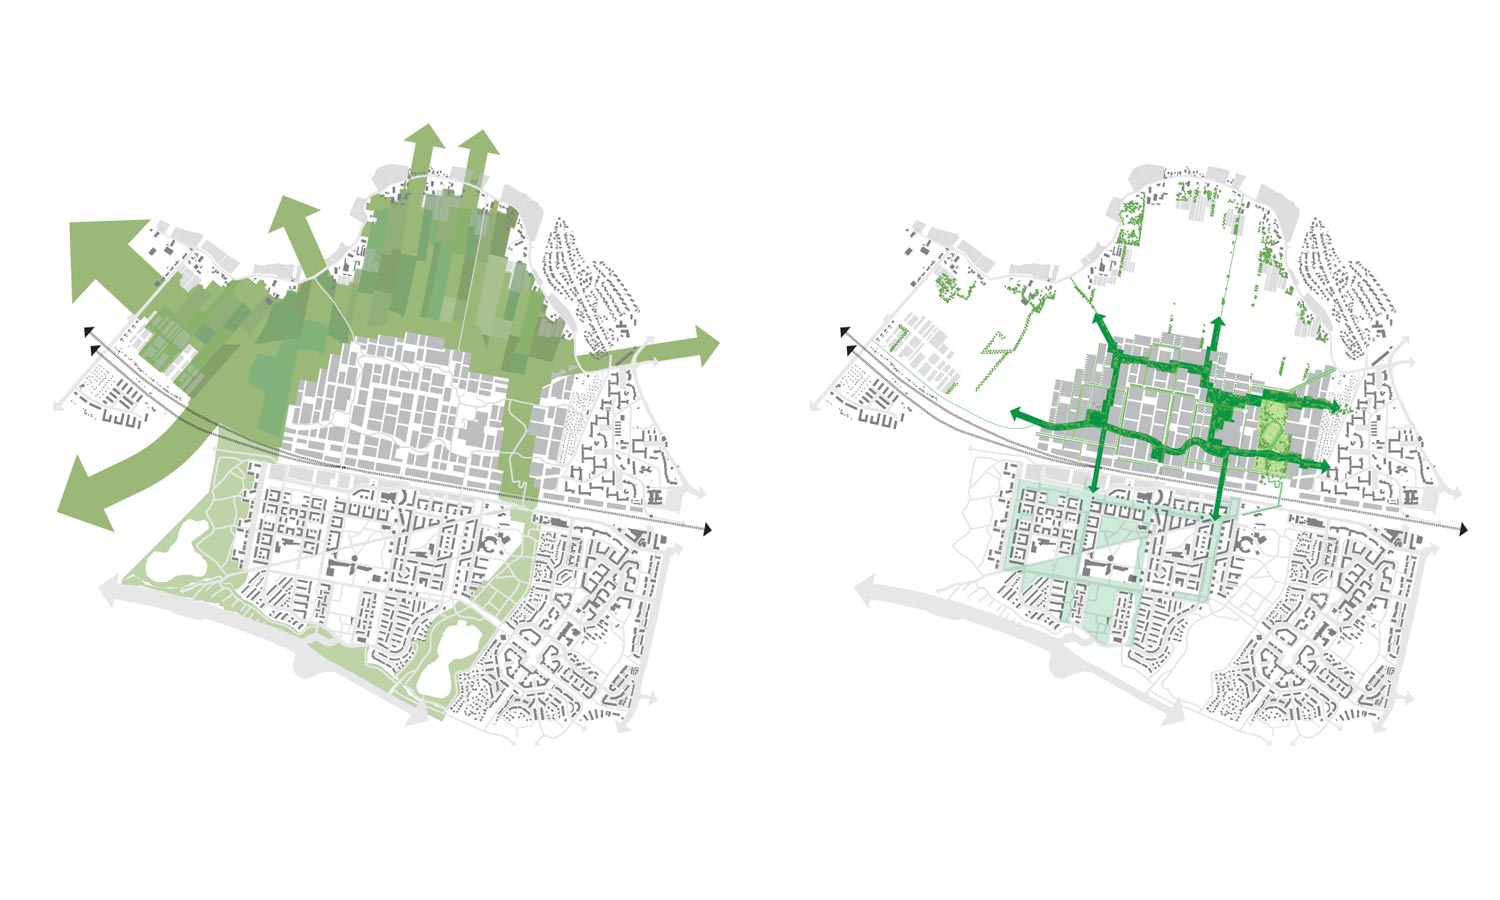 Left: The green landscape surrounding the district. Right: The green structure within the district connects with the rural surroundings.